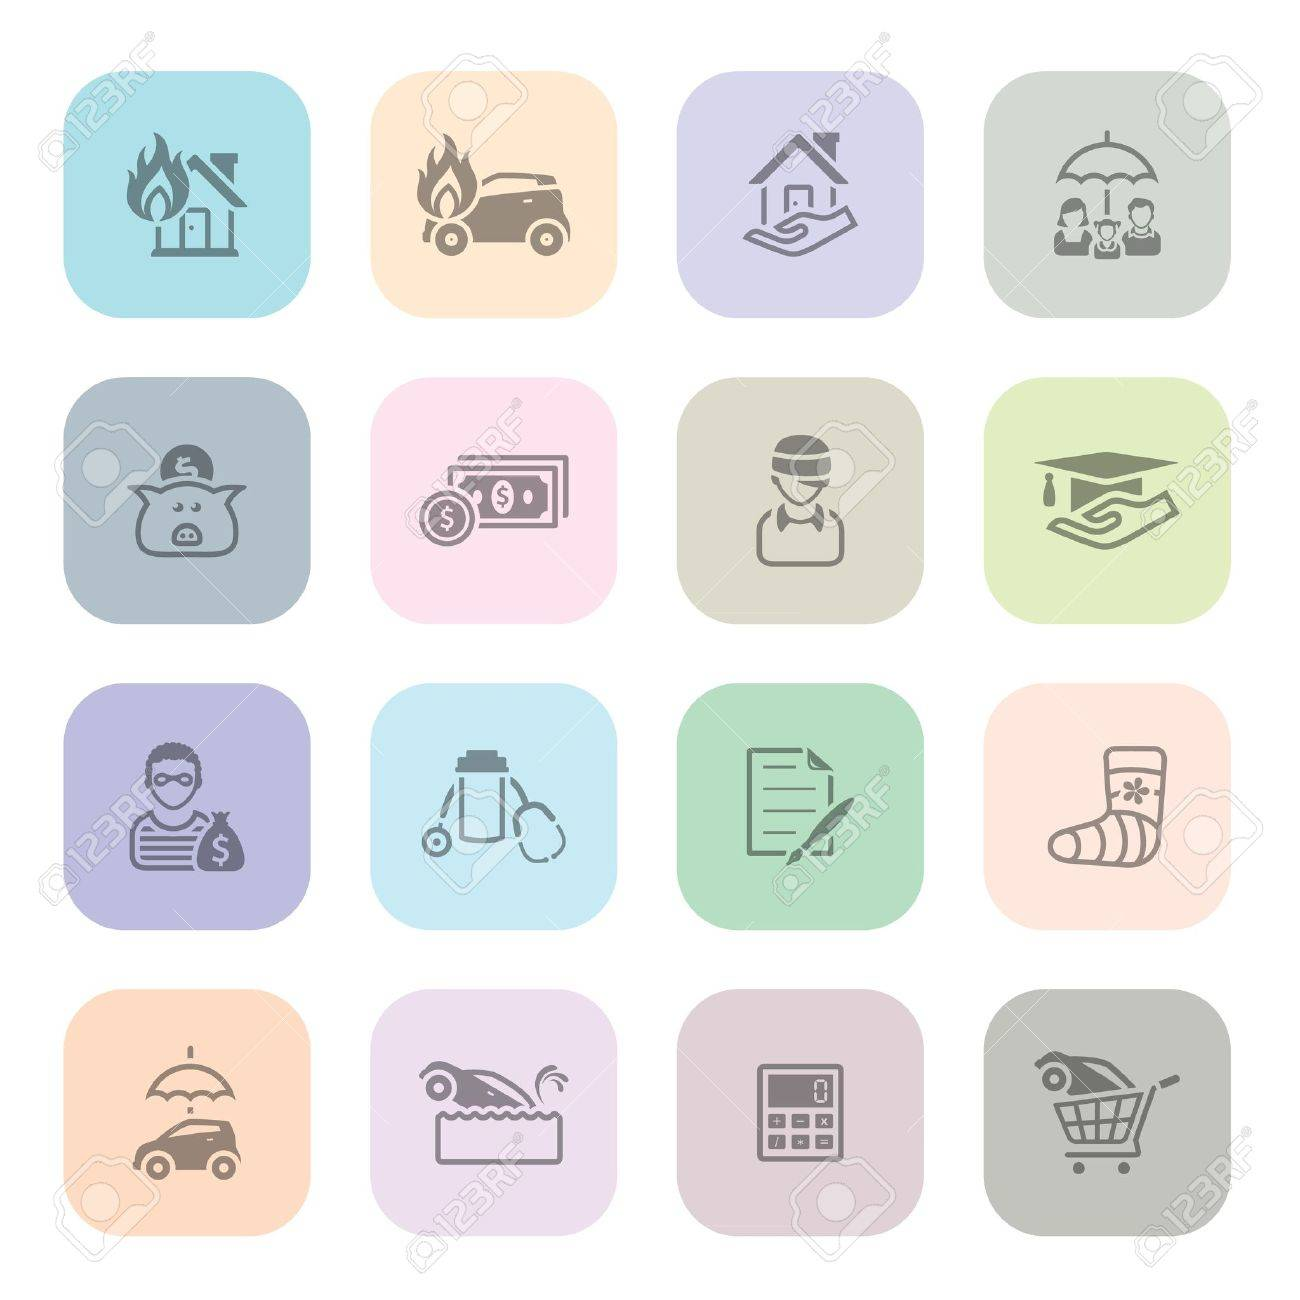 Insurance icon series in light colors Stock Vector - 19605648